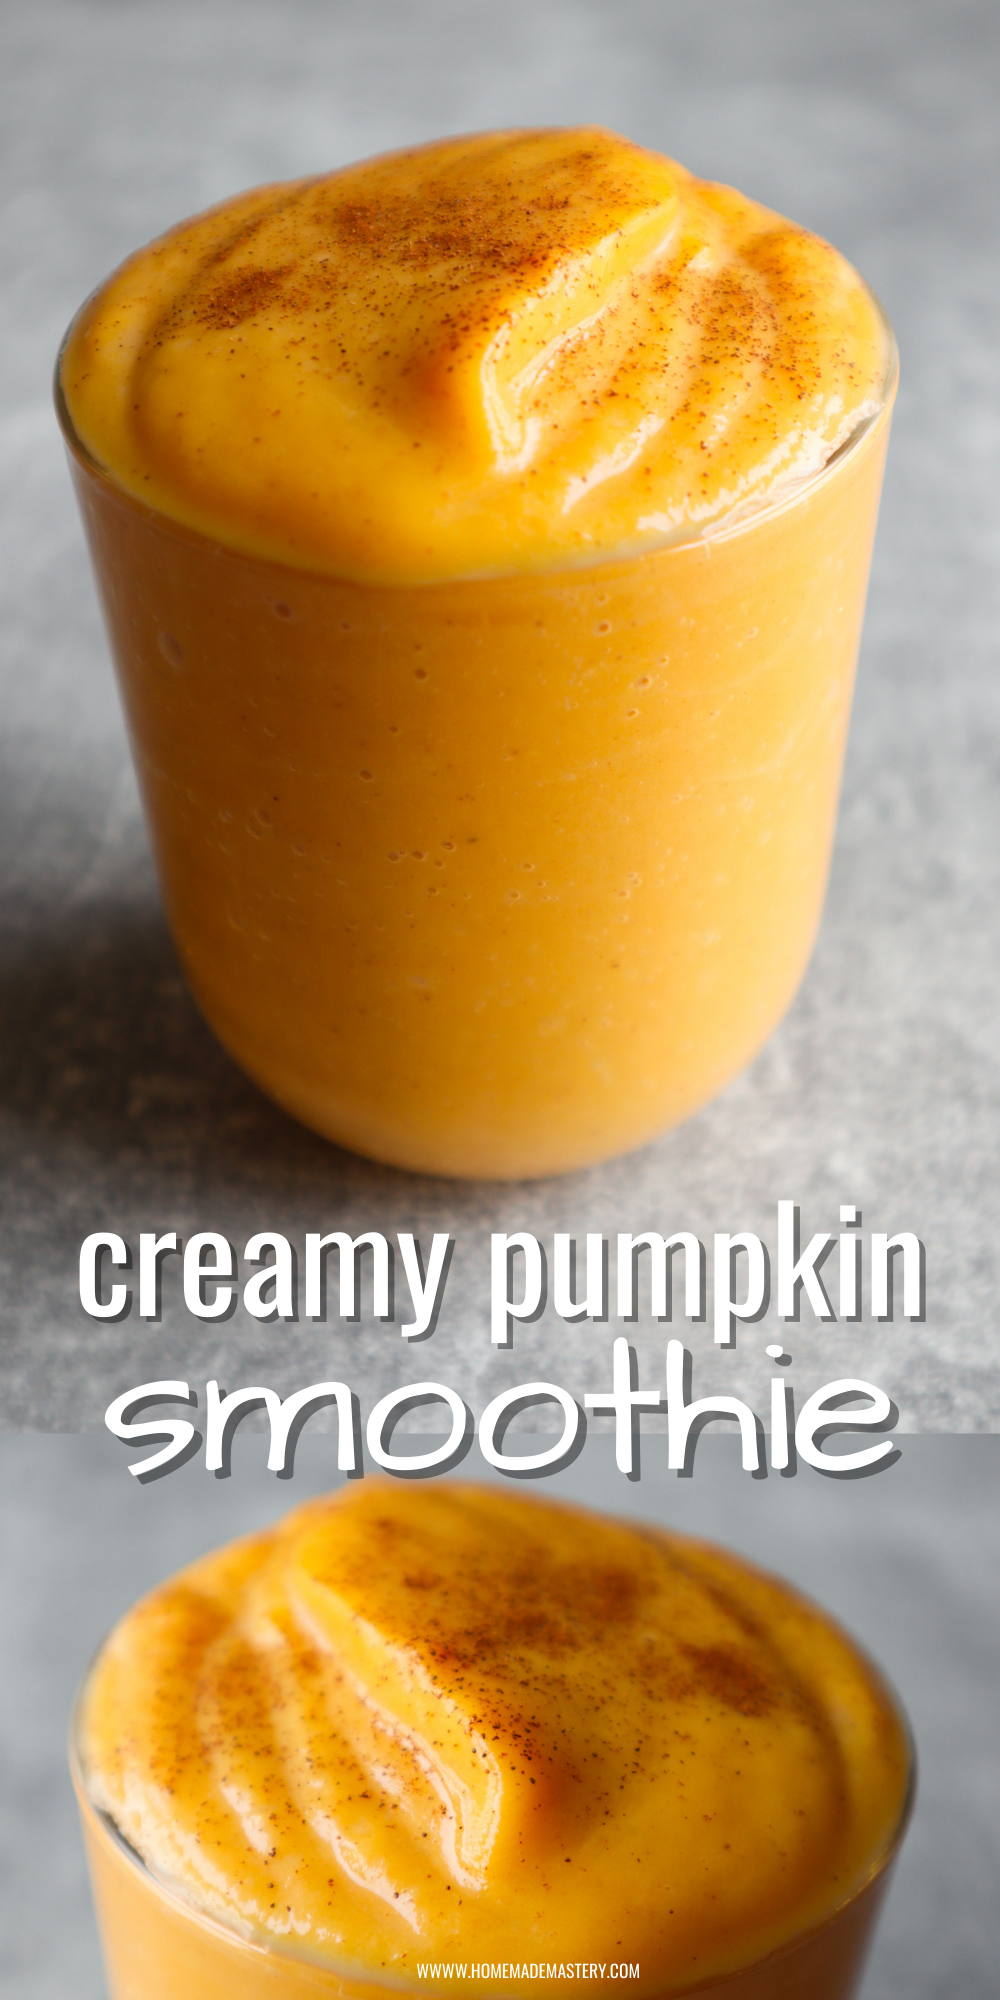 This easy pumpkin smoothie recipe is made with simple ingredients and is such an easy way to use up roasted pumpkin! You will love this delicious pumpkin recipe for a quick snack, dessert or even breakfast!